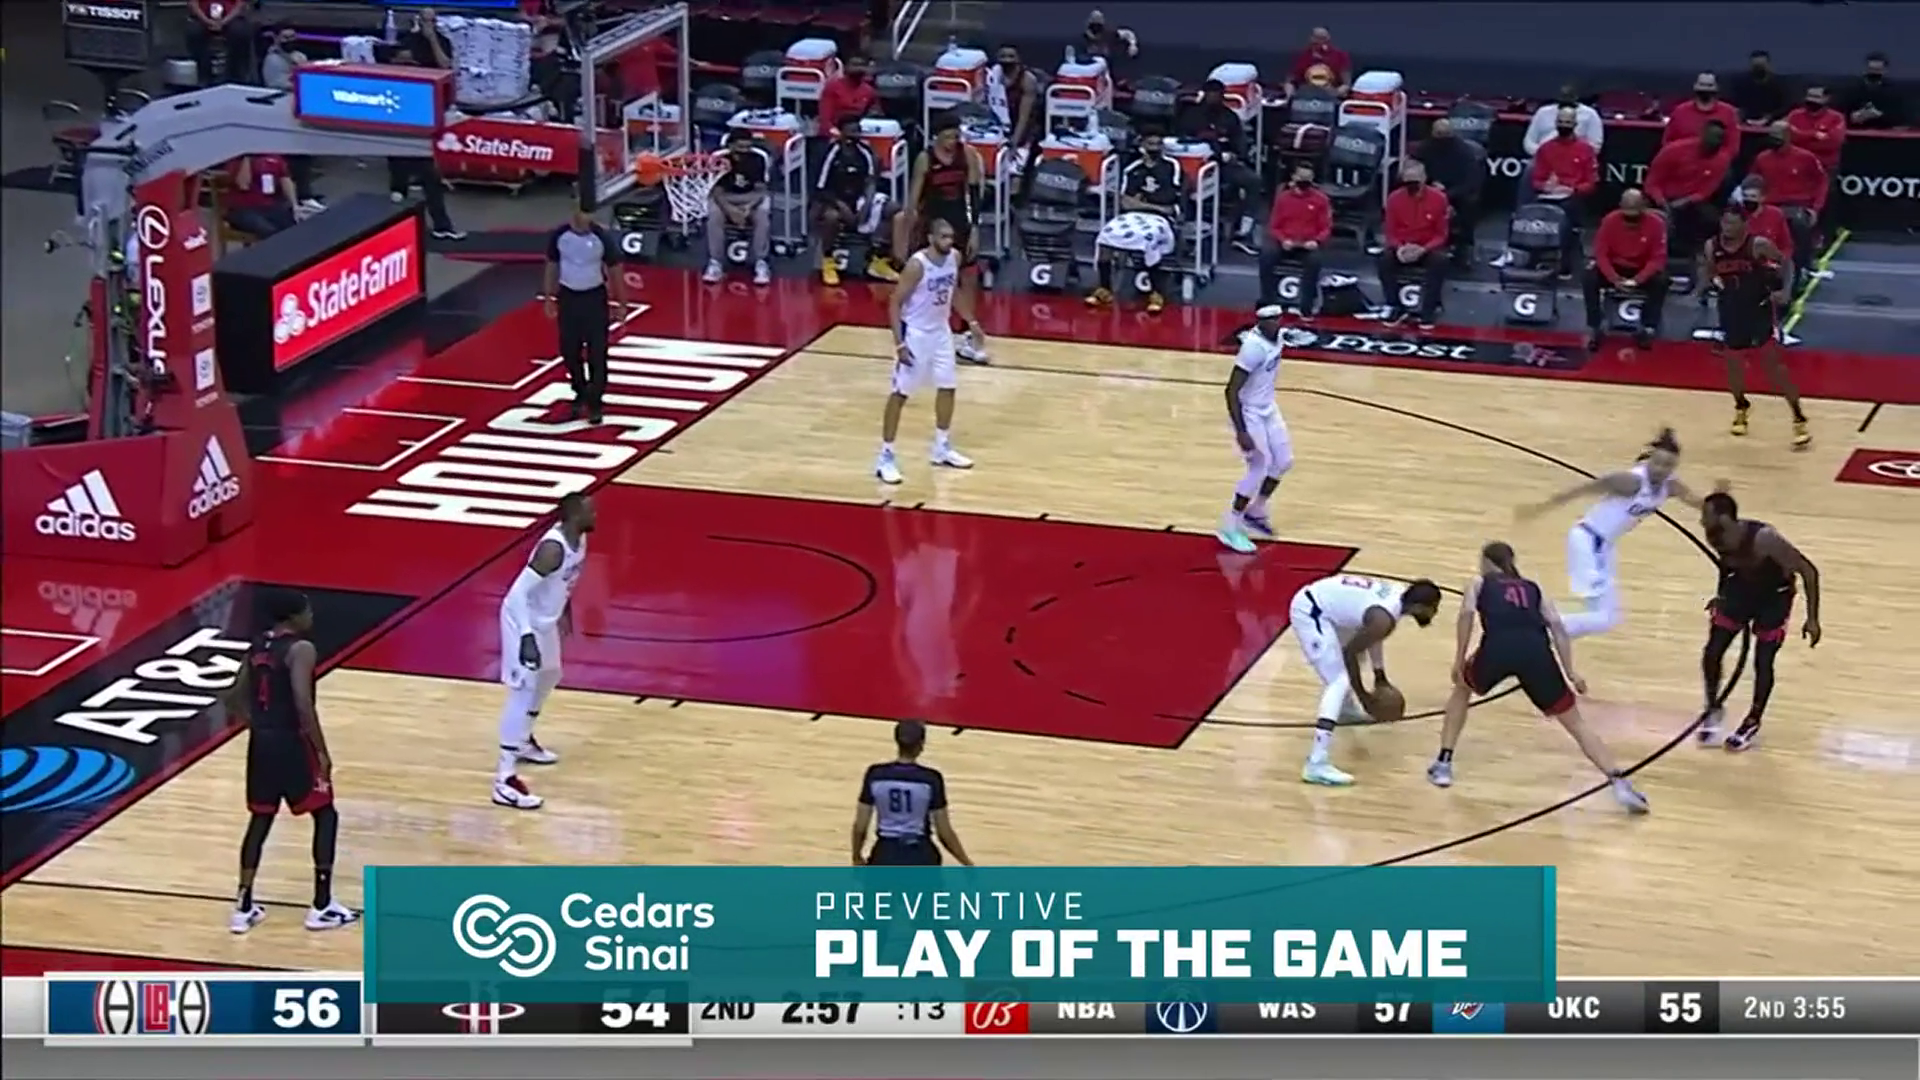 Cedars-Sinai Preventive Play of the Game | Clippers vs Rockets (4.23.21)